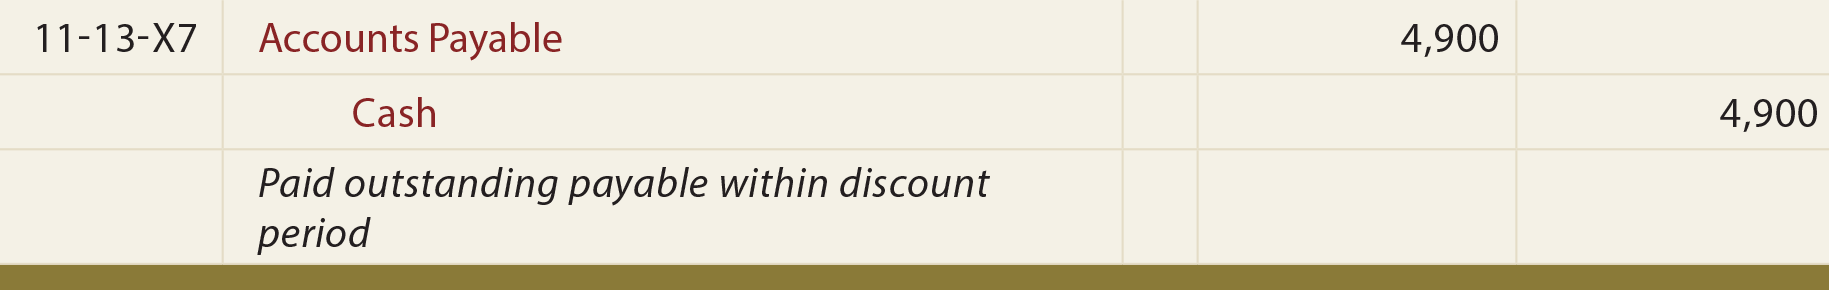 Purchases With Net Discount General Journal Entry - Entry to record payment within discount period